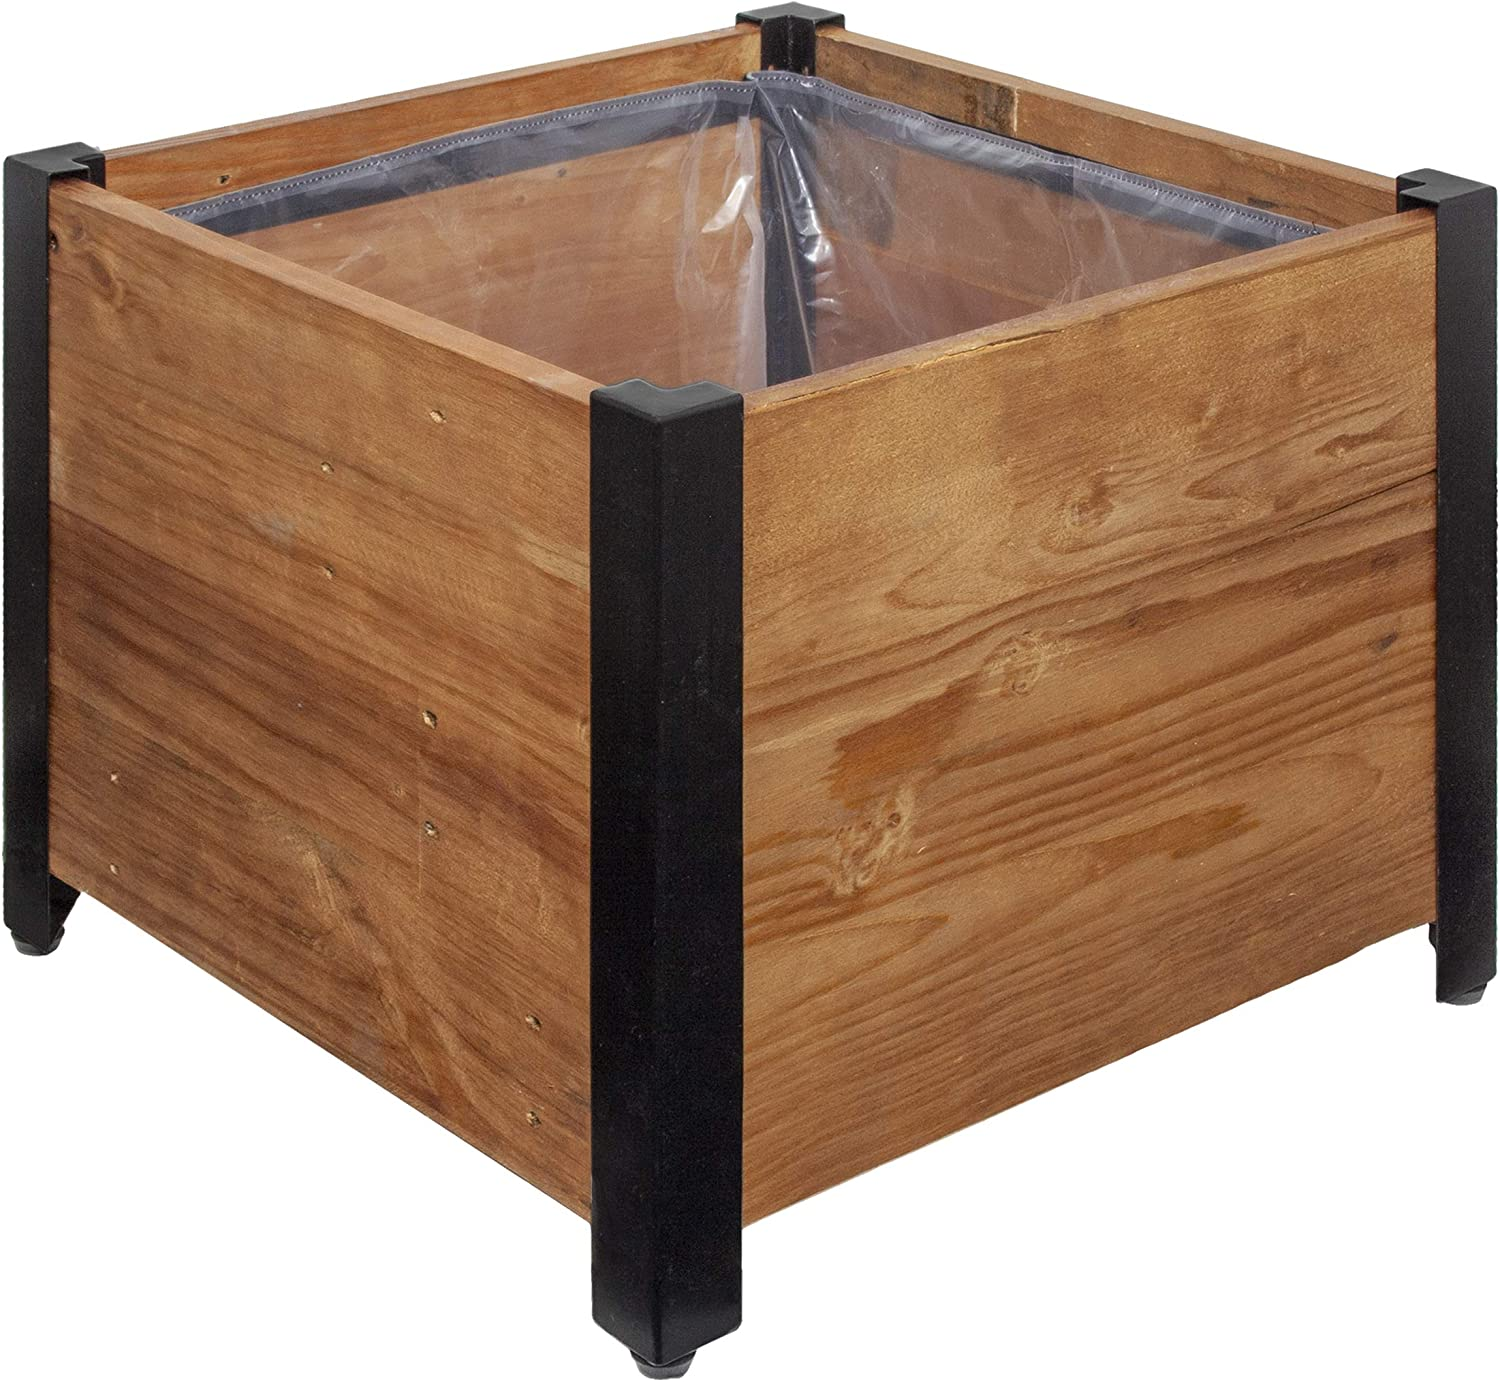 "AmazonBasics Recycled Wood Square Garden Planter - 17.75"" x 17.75"""